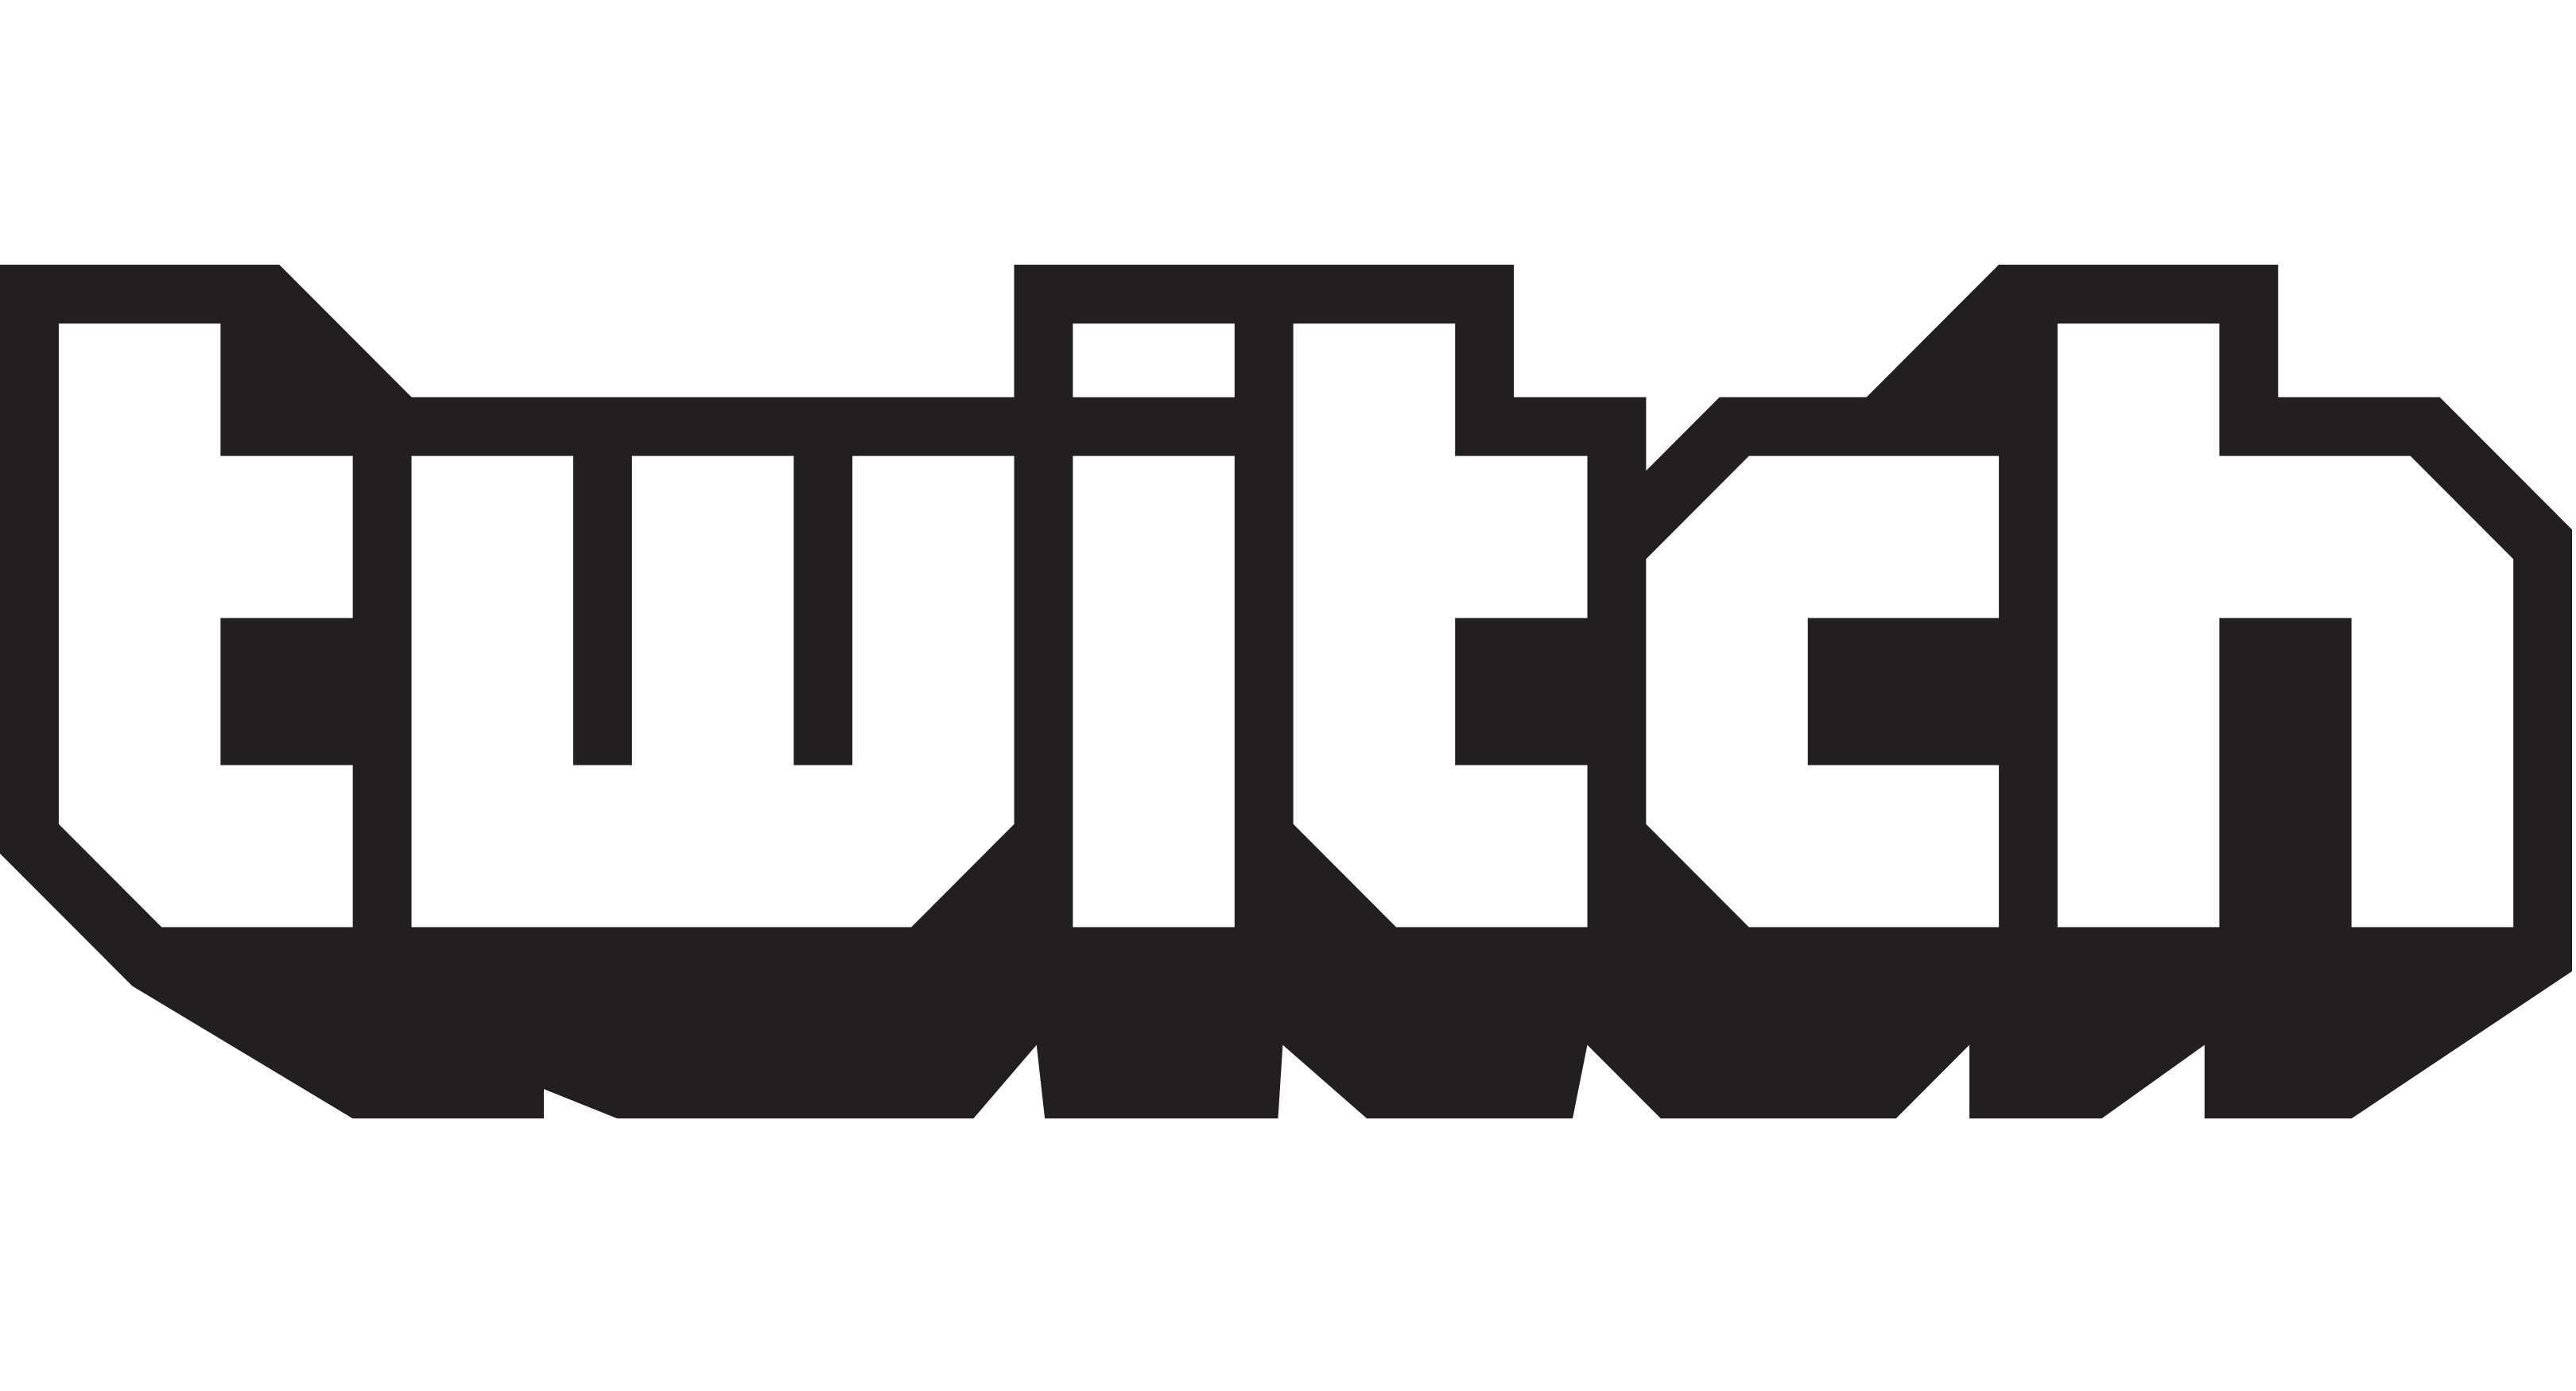 Amazon Steps In, Picks Up Twitch for $970 Million